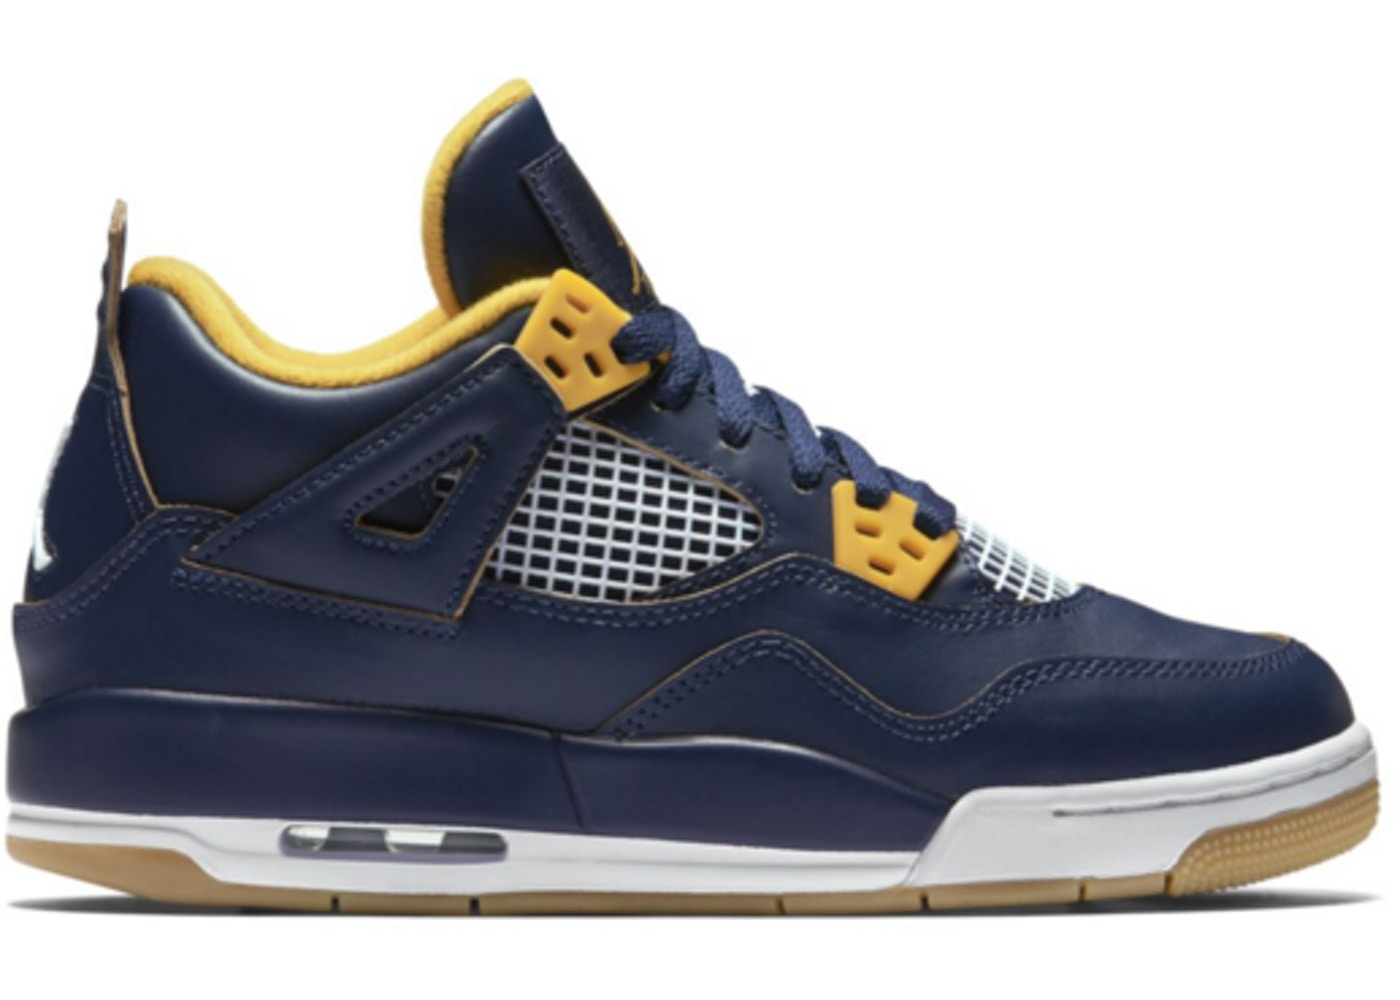 new style f807e be56a Air Jordan 4 Shoes - Volatility